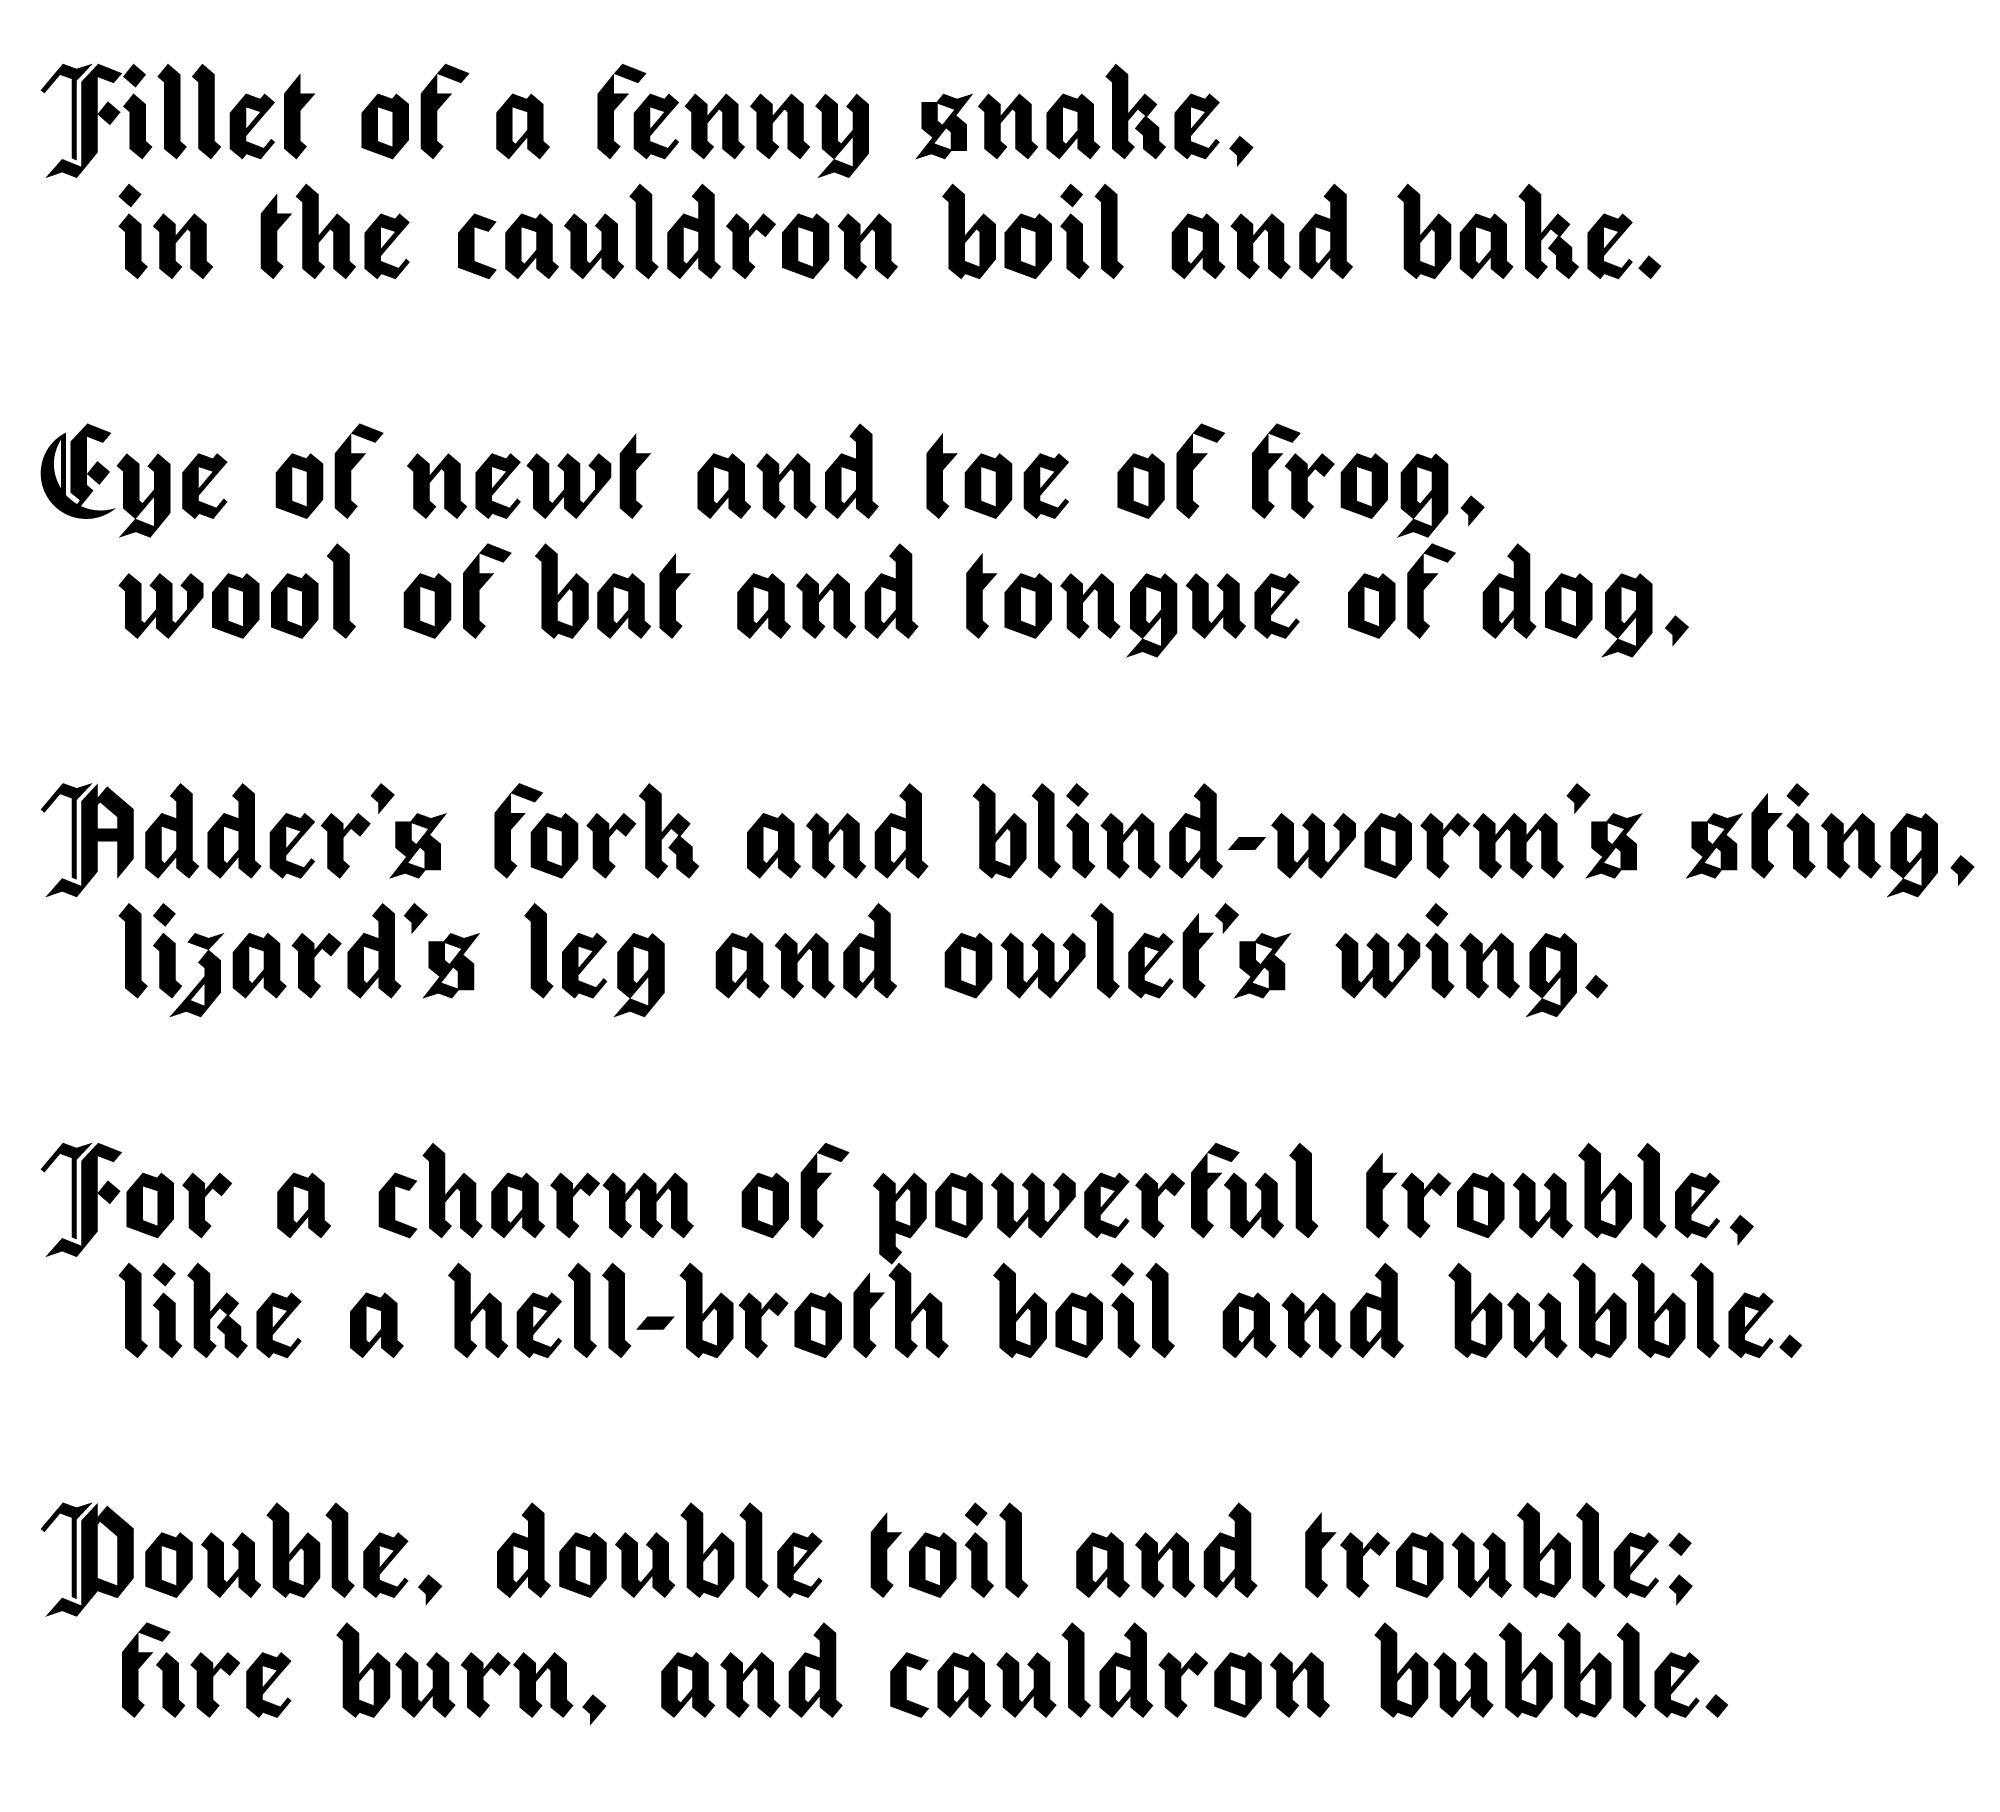 A poem from Macbeth, written in the Occult typeface